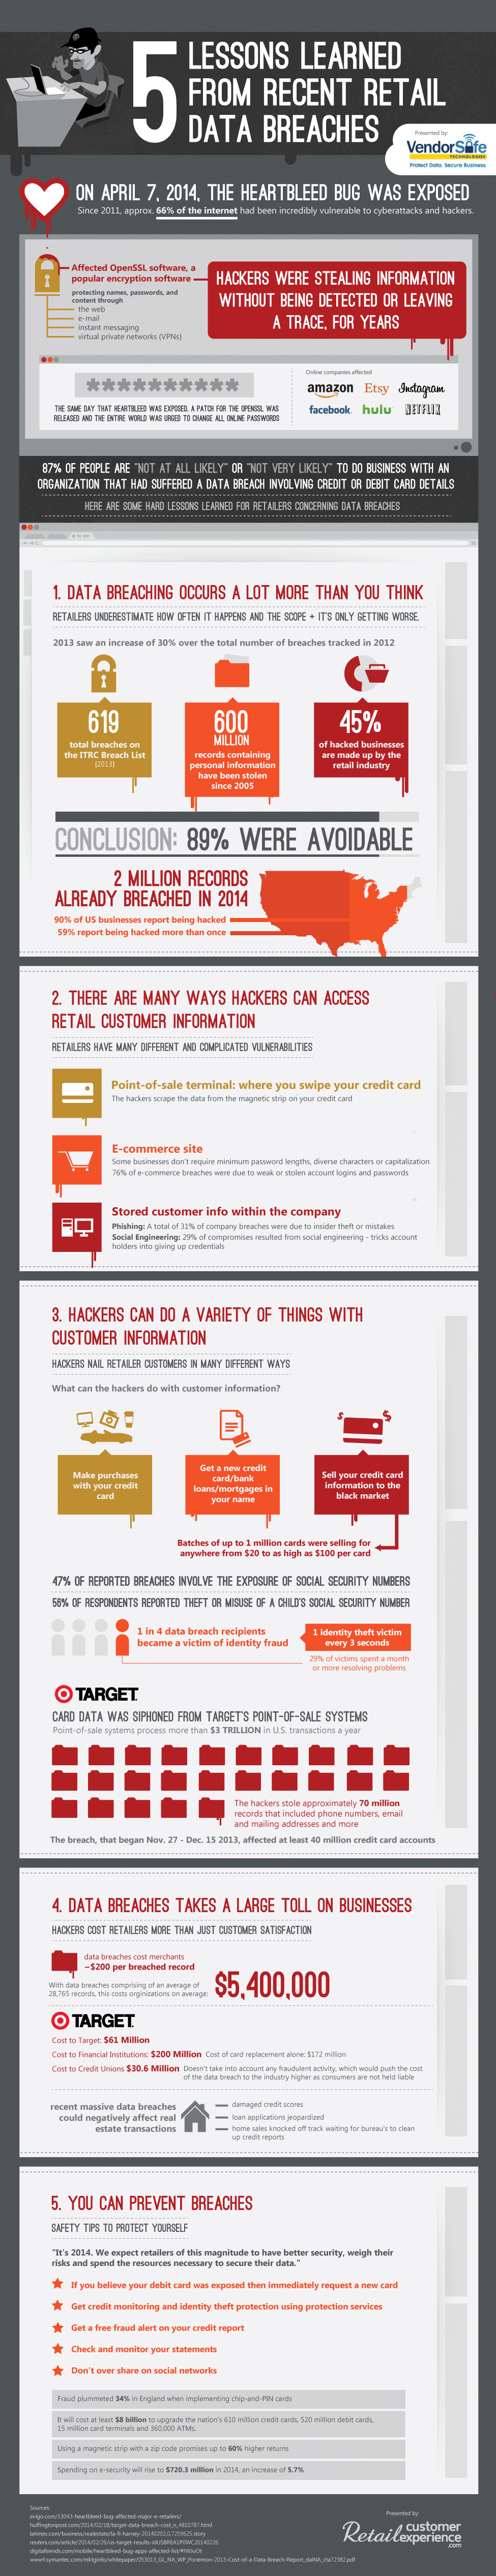 5-Lessons-Learned-From-Recent-Retail-Breaches